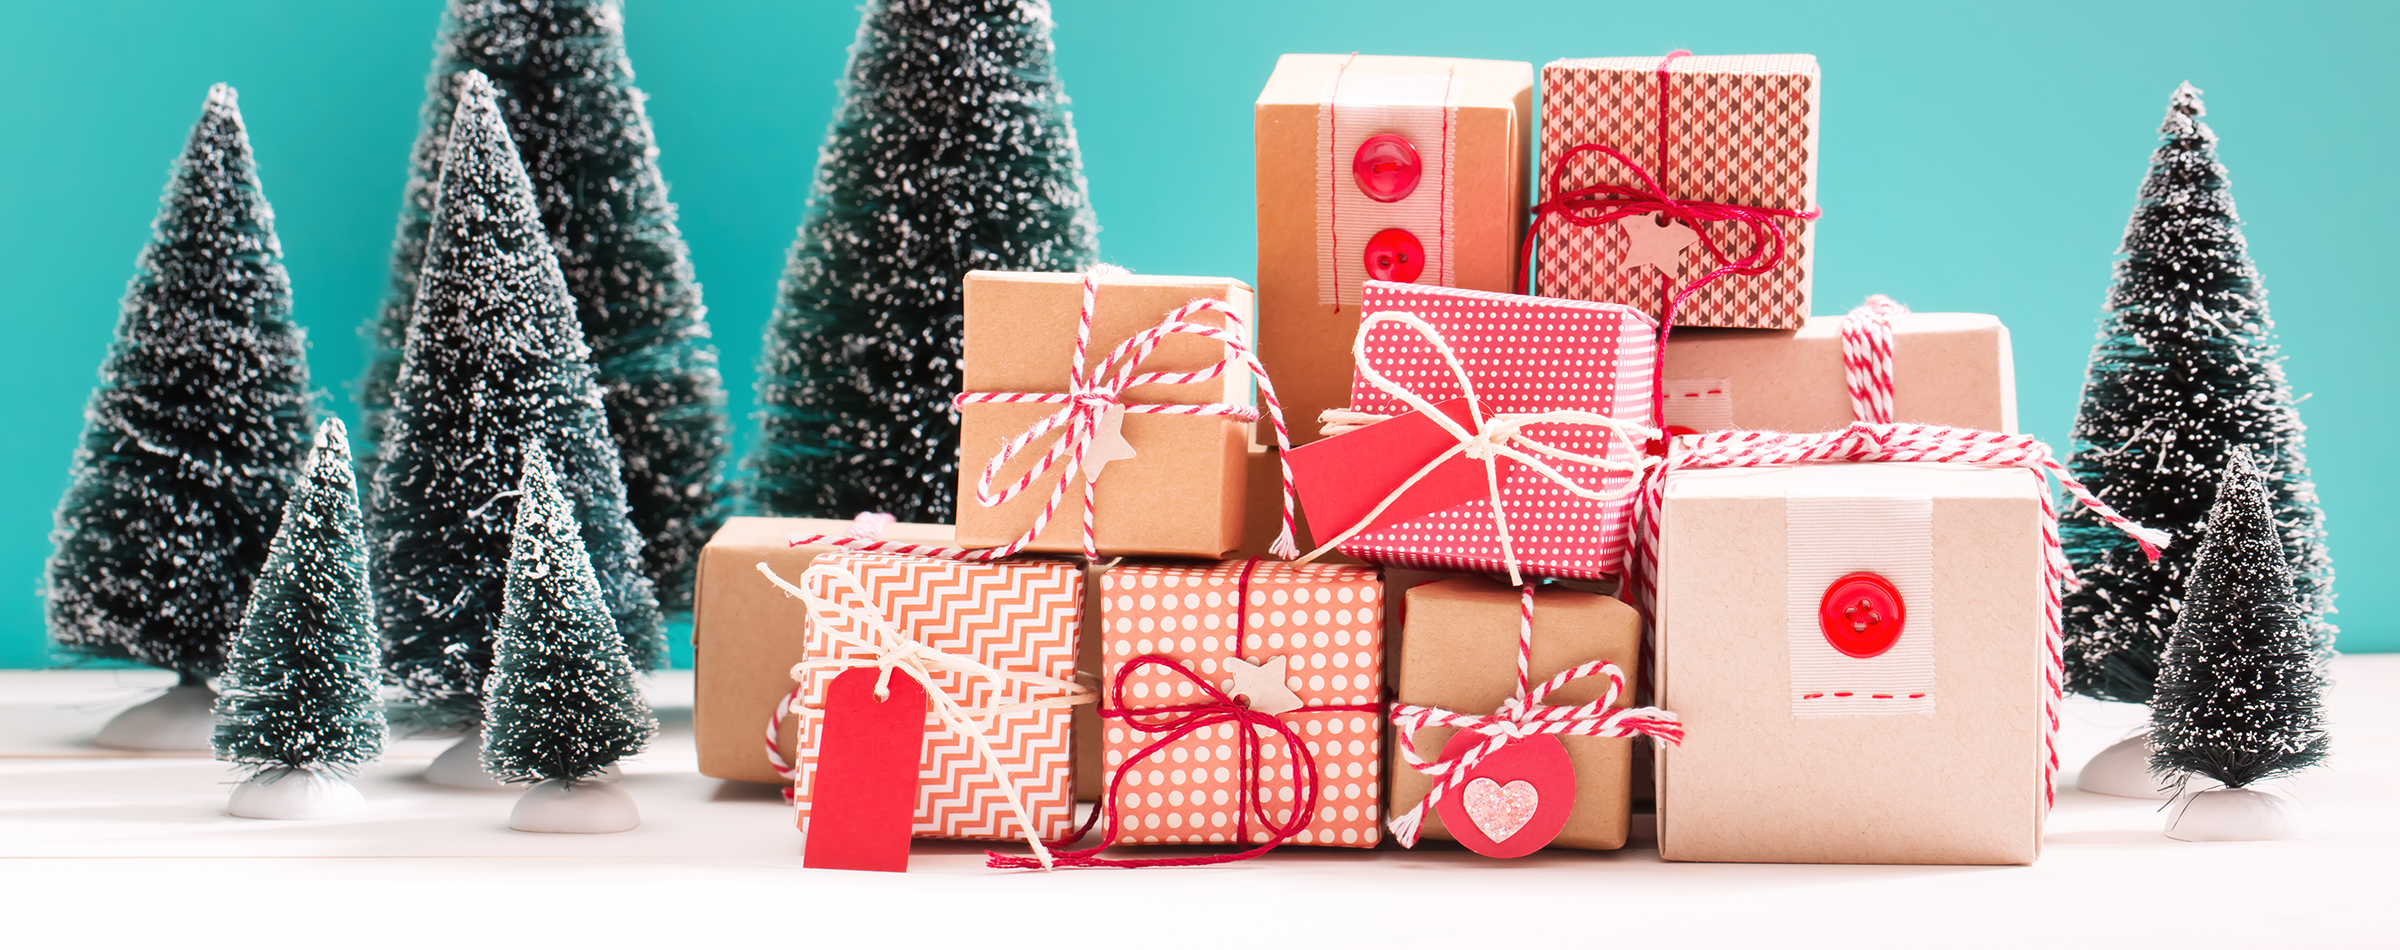 9 Easy, Inexpensive Christmas Gift Ideas - Abeka - Abeka